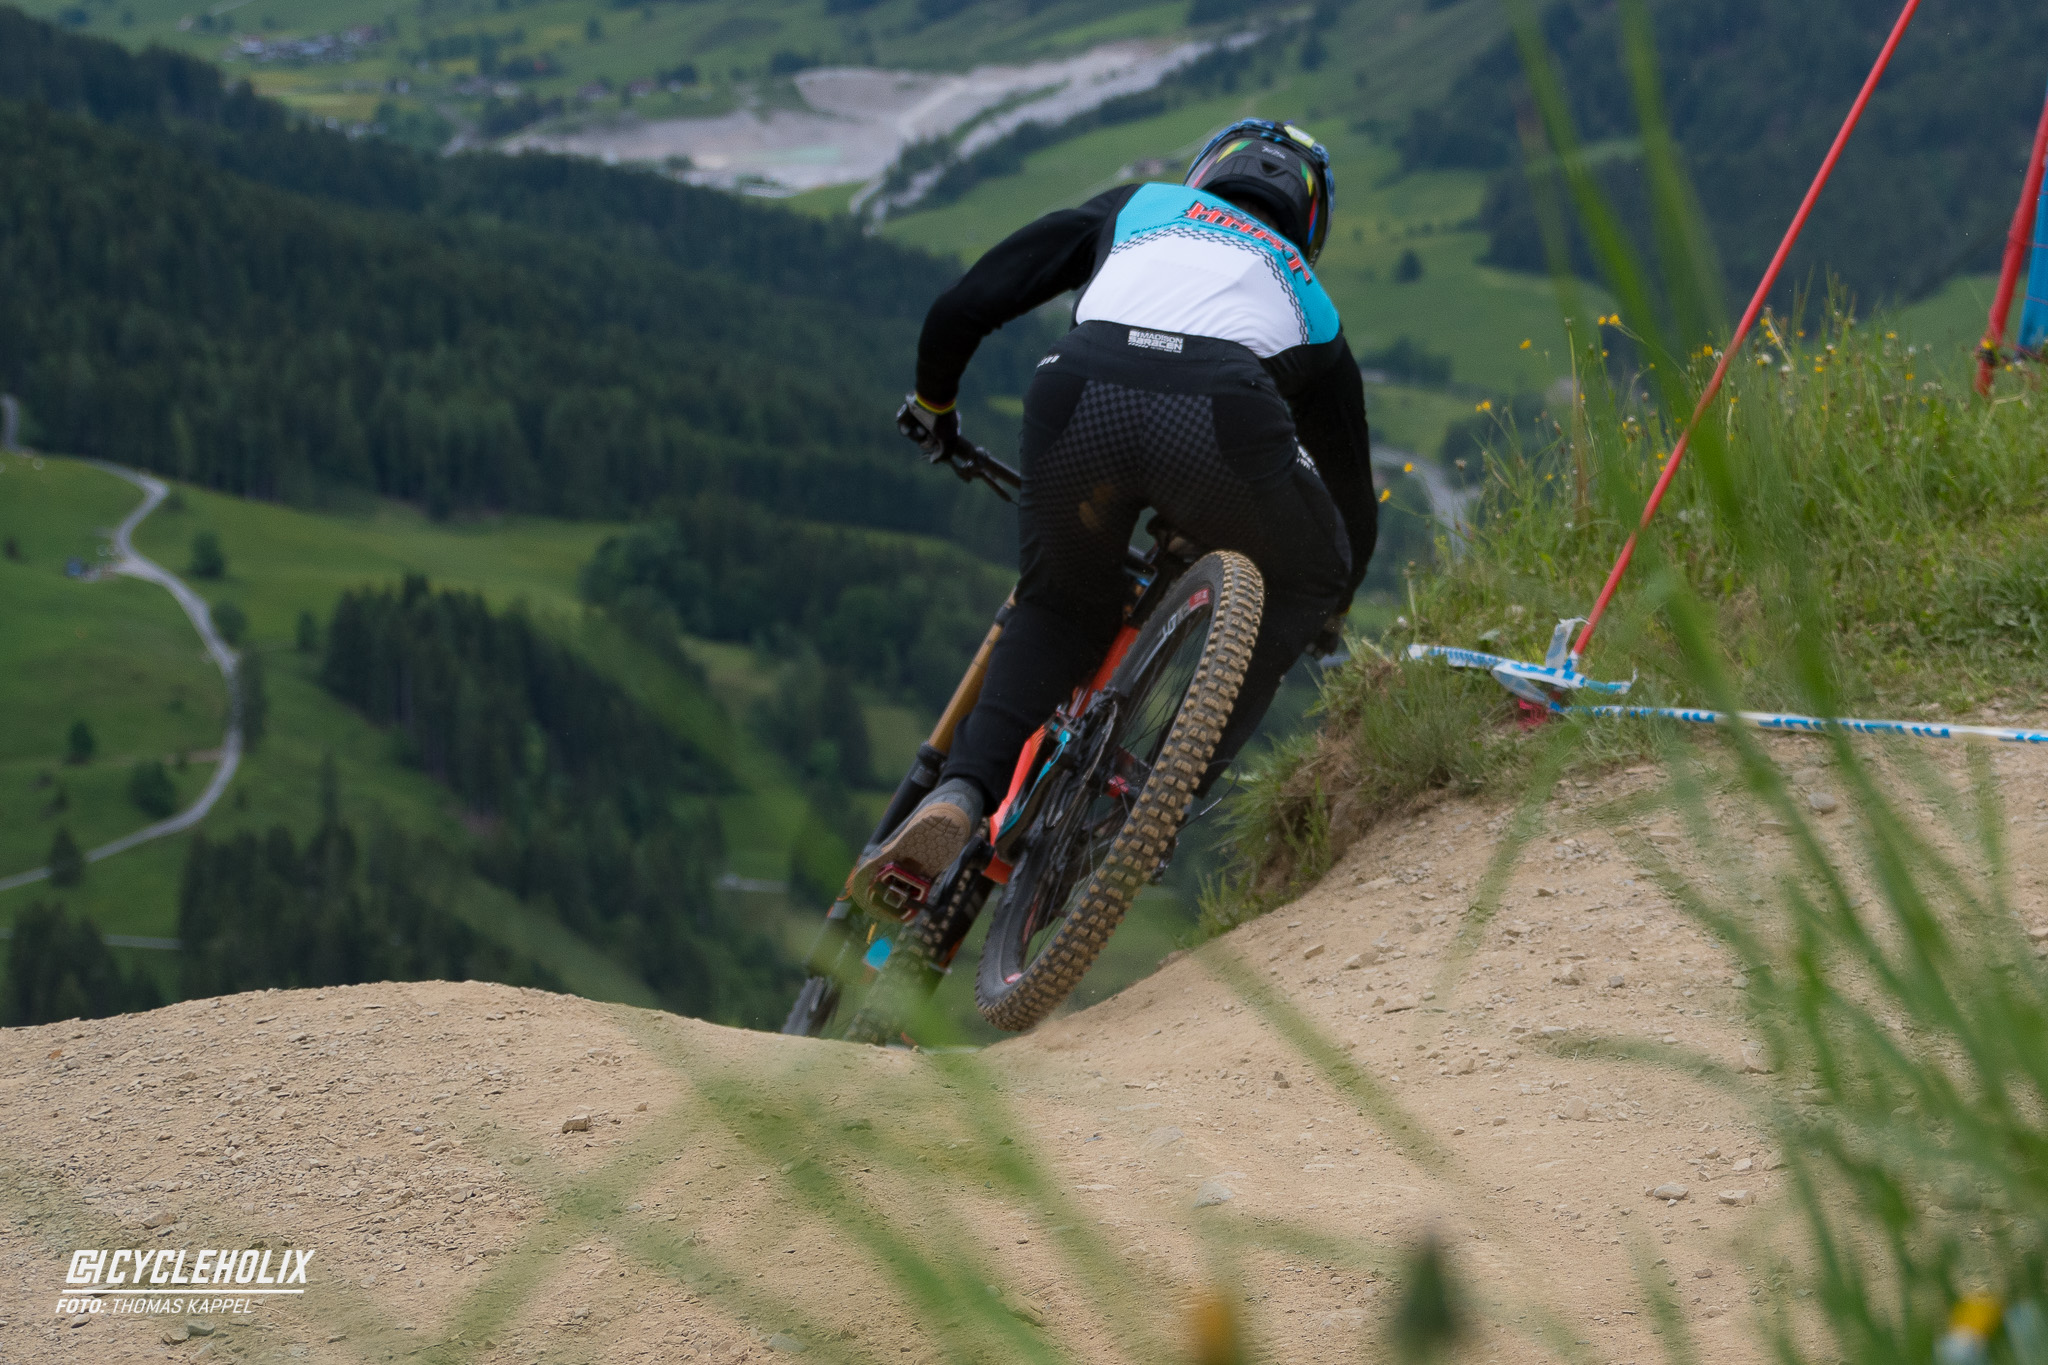 2019 Downhill Worldcup Leogang Finale Action QA 5 Cycleholix